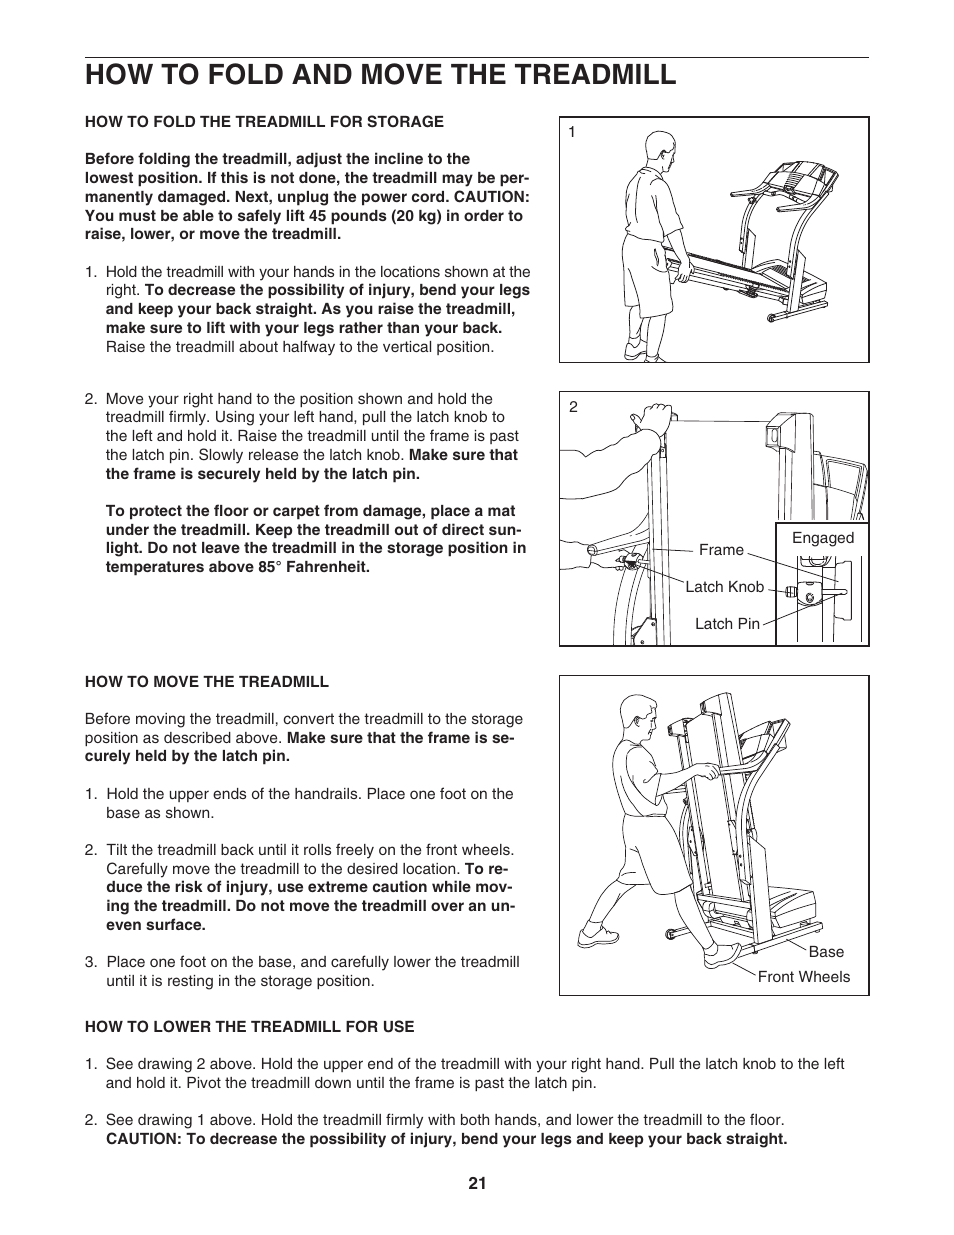 How to fold and move the treadmill | ProForm 580X 831 293063 User